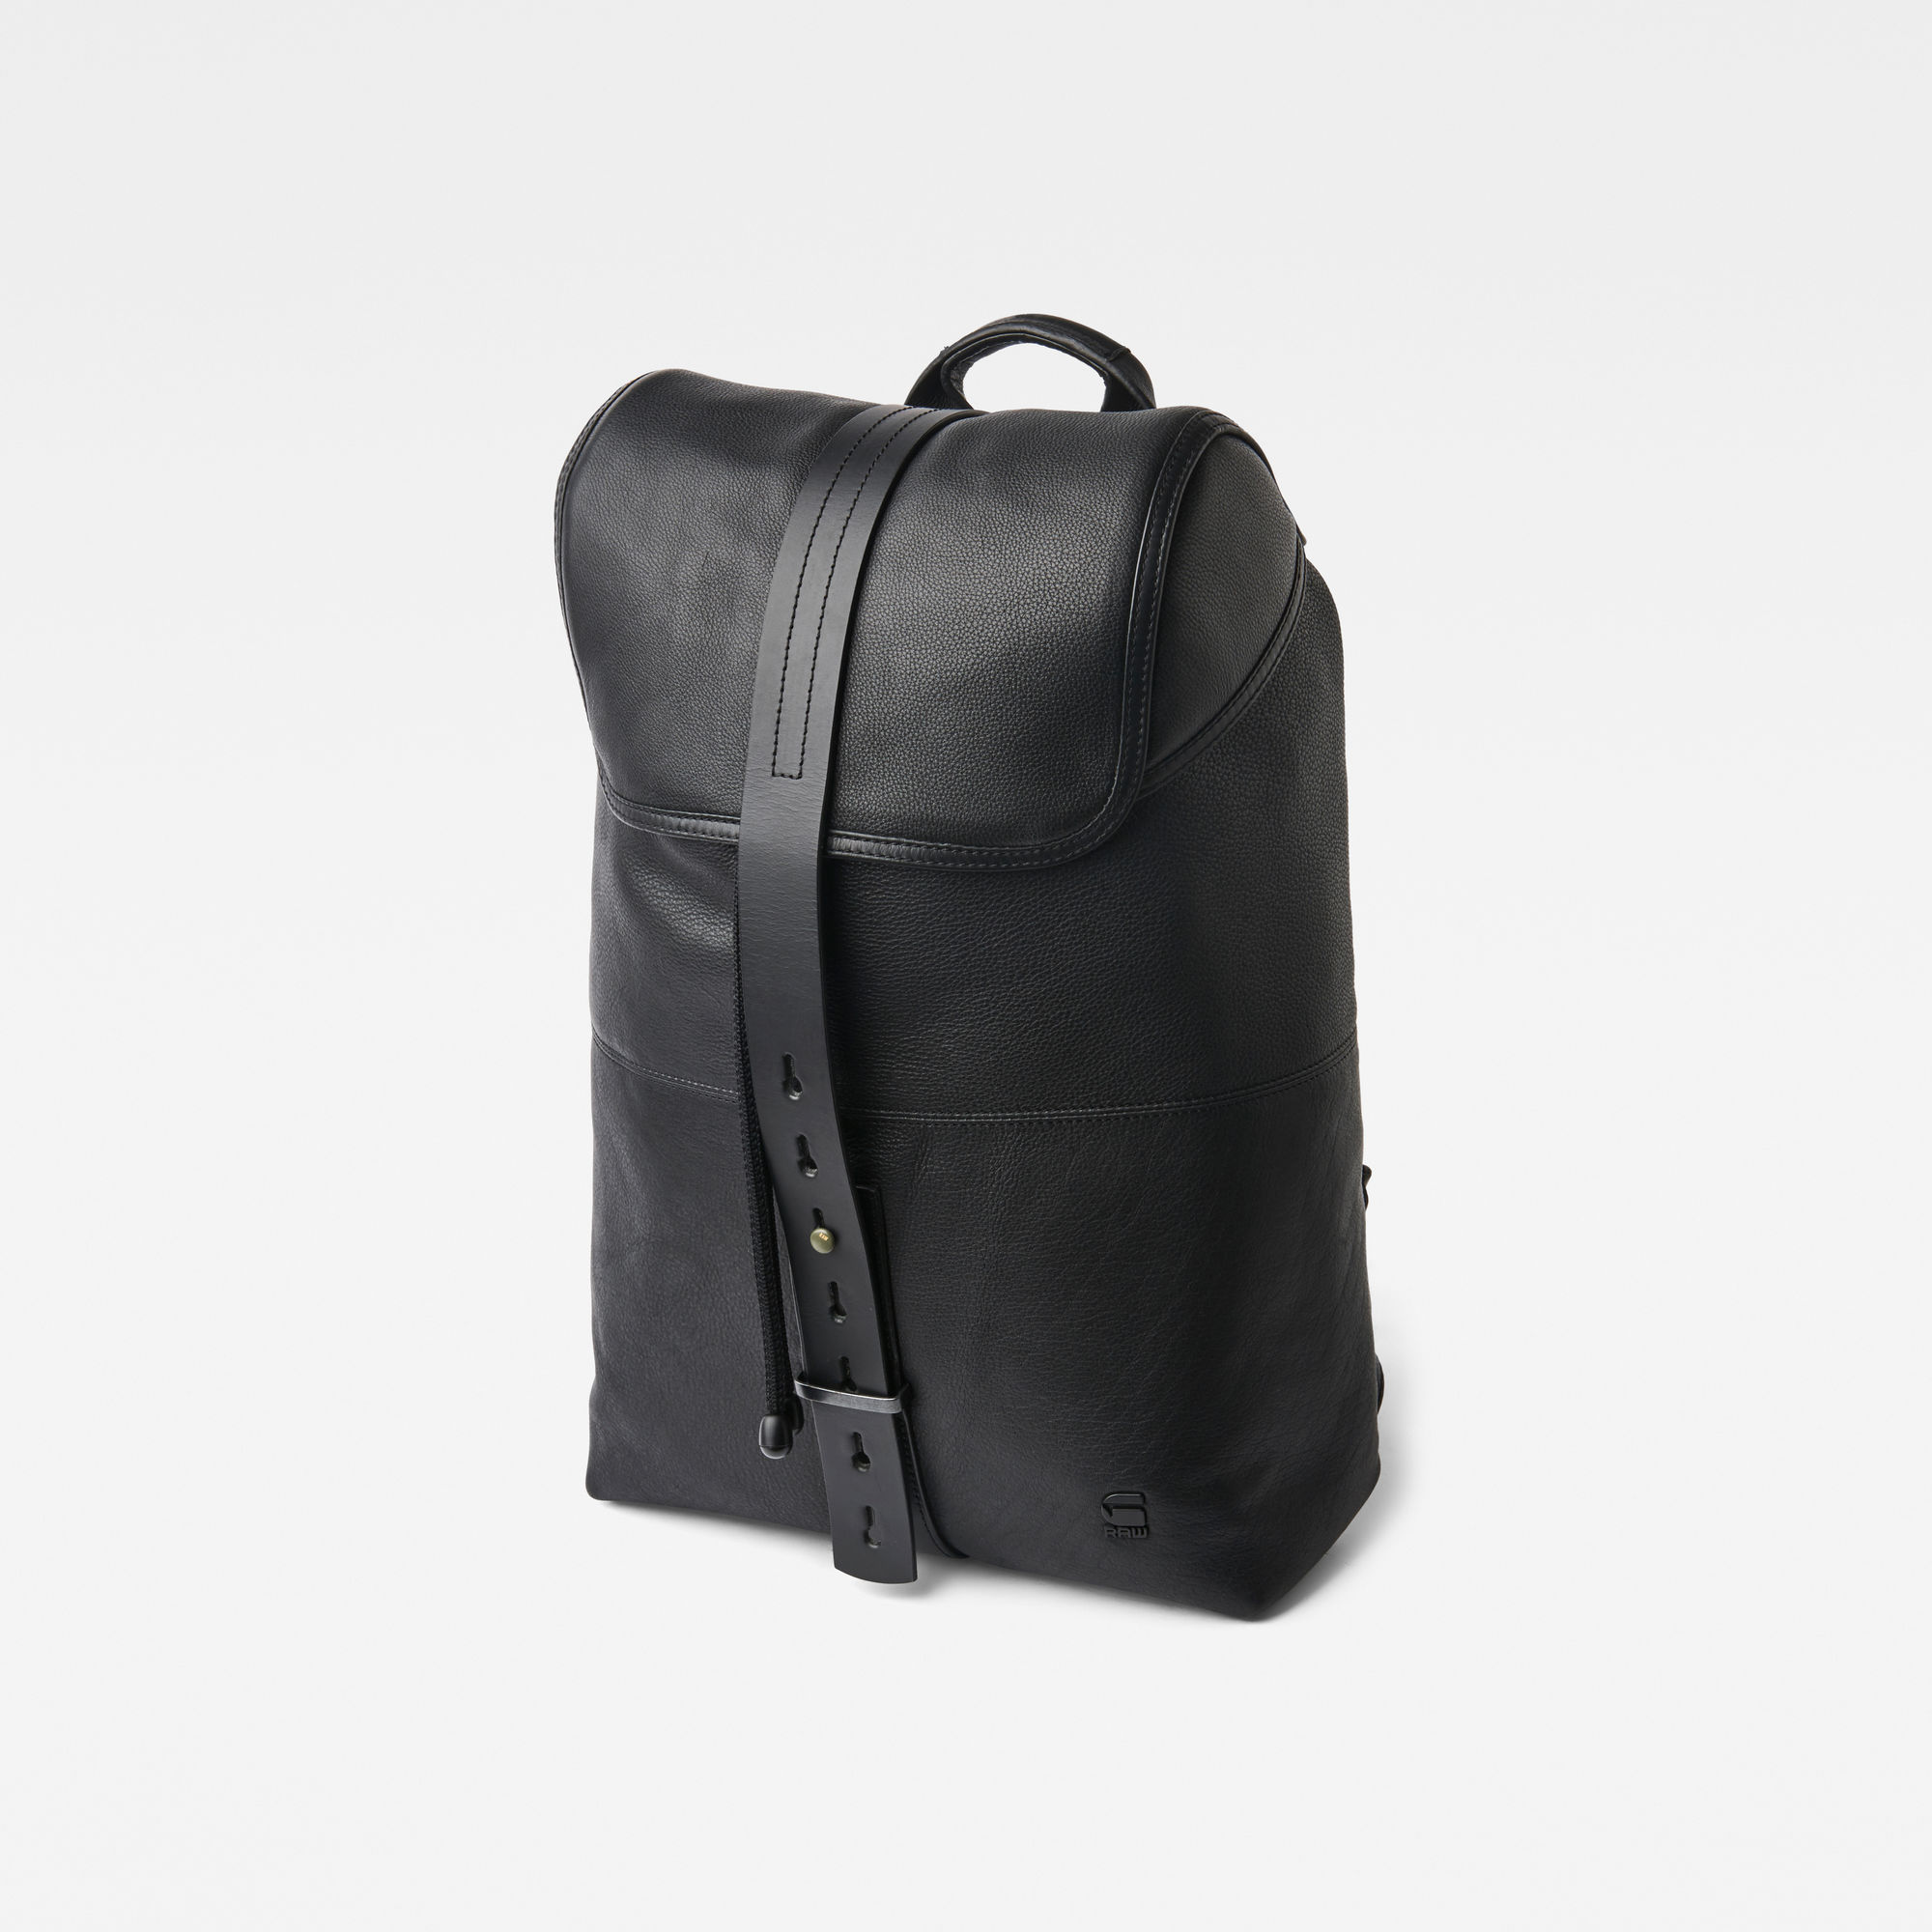 Image of G Star Raw Vaan Backpack Leather